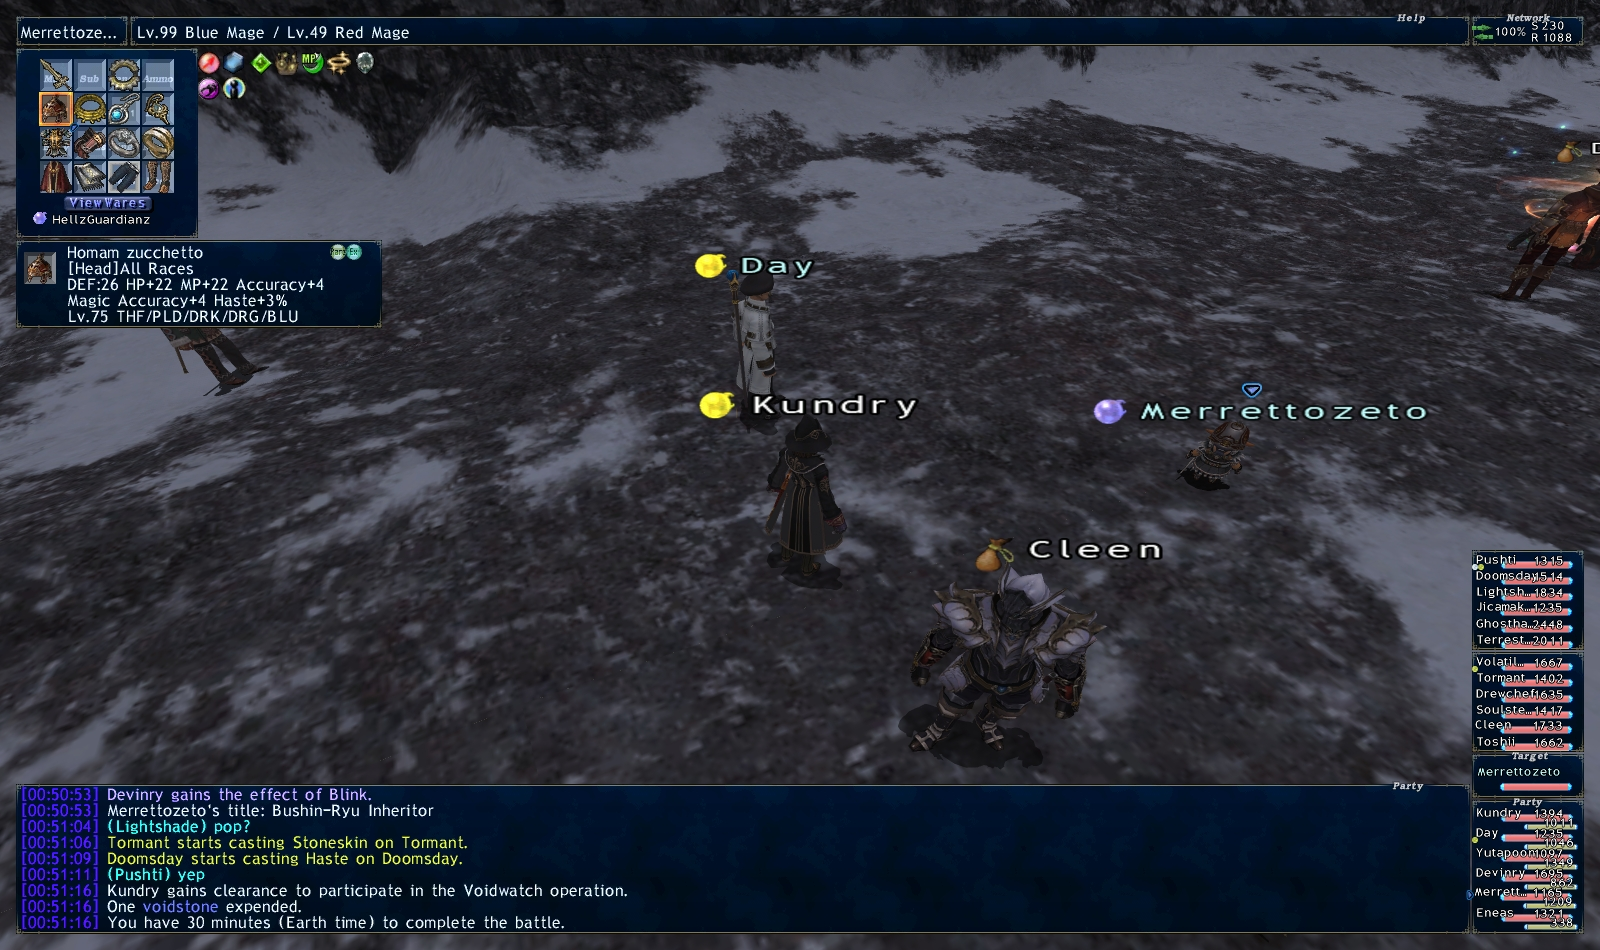 drwaffles ffxi your bear also thread time spend fucks unemployed paying this economy taxes rest players sucking would without cock addictions german full about they money their commenting plays into wouldnt were social angry xxiii player guys rude being trying impress decade almost gimpconfusedwtf jobs enough well playing started dont